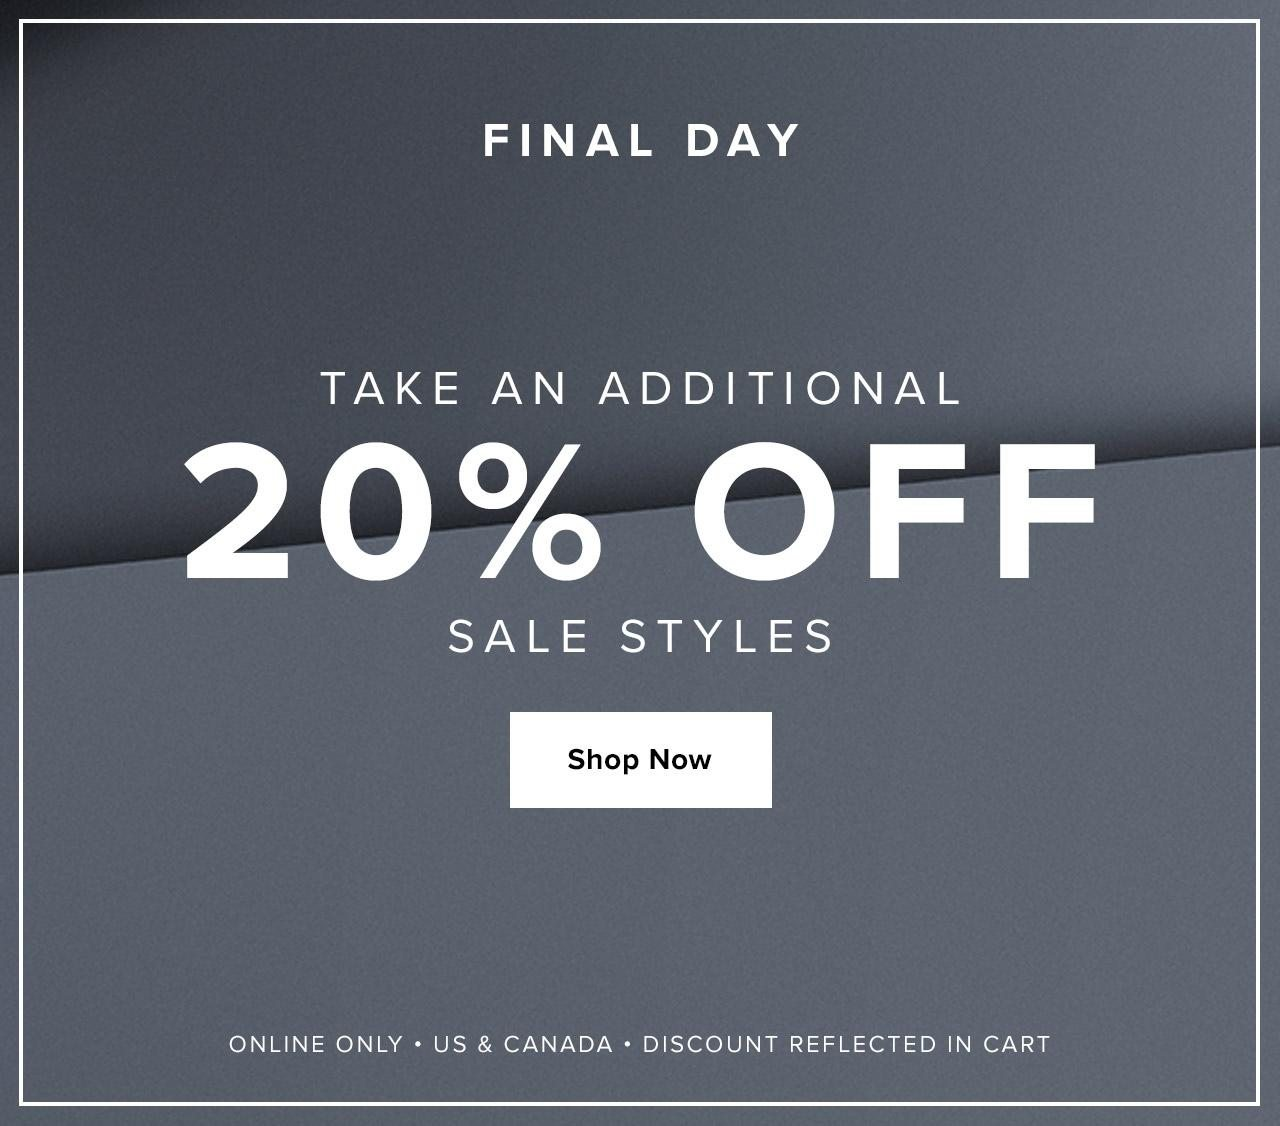 Final Day. Take An Additional 20% Off Sale Styles. Online Only. US & Canada. Discount Reflected in Cart. Shop Now